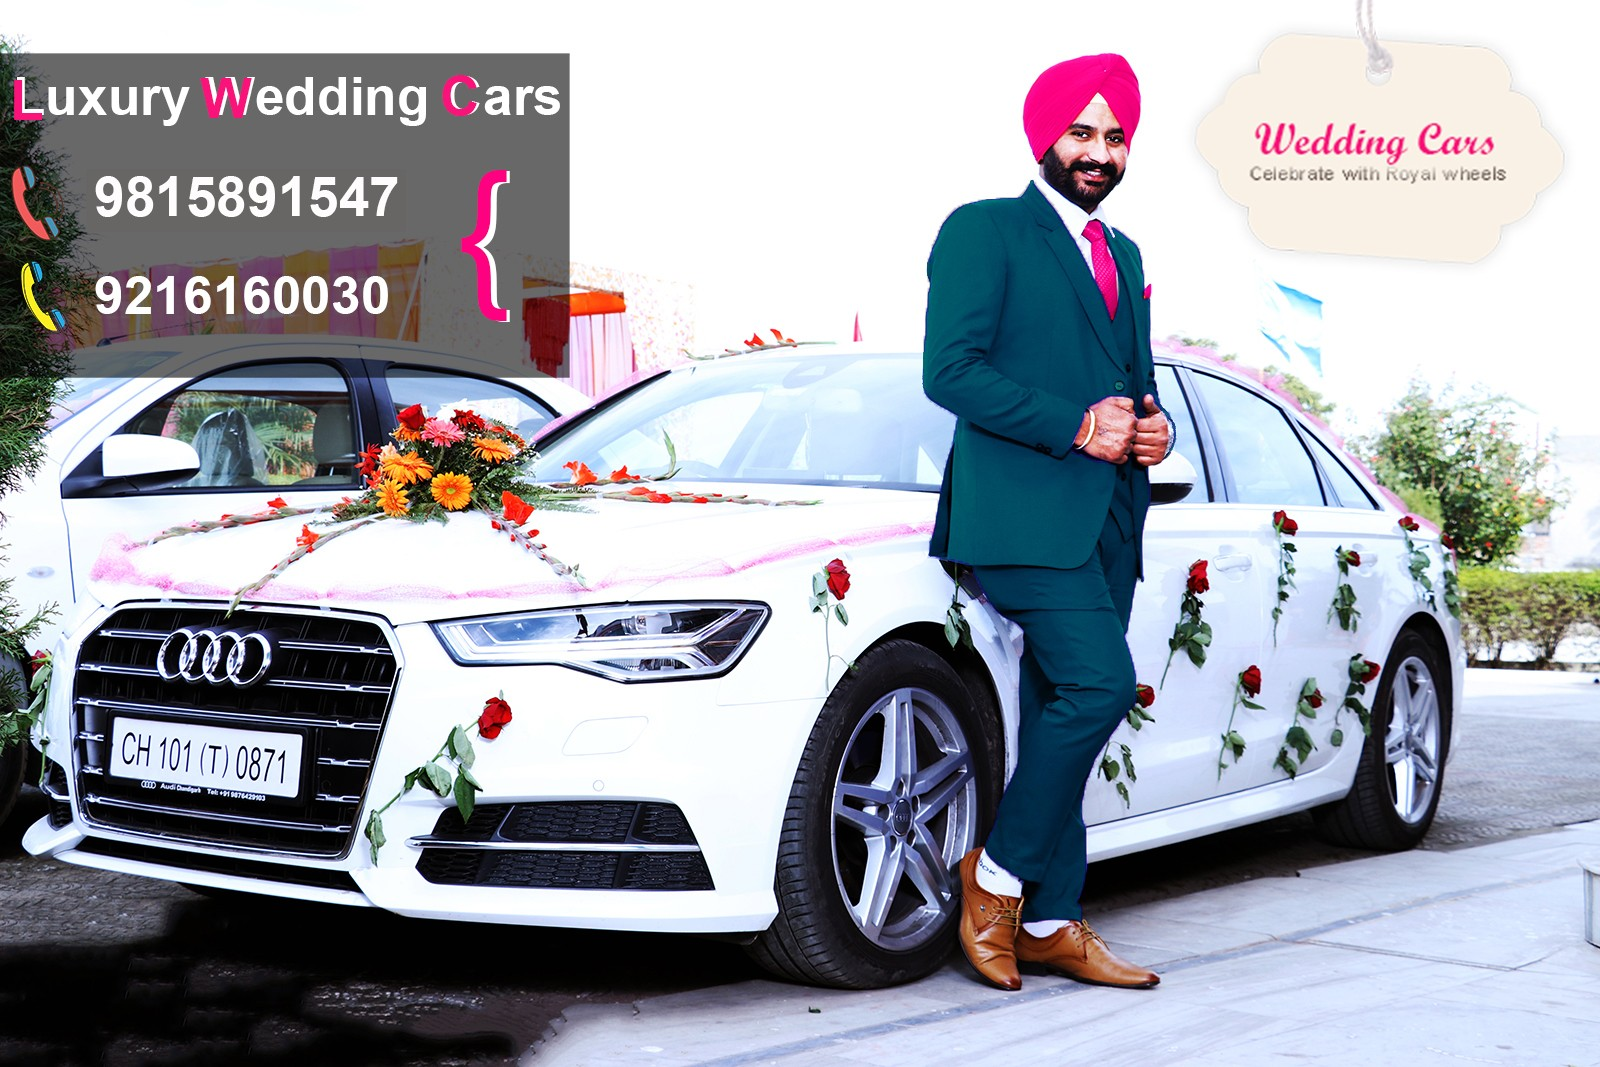 Ludhiana Luxury Car Rental, Luxury Car Rental Service in Ludhiana